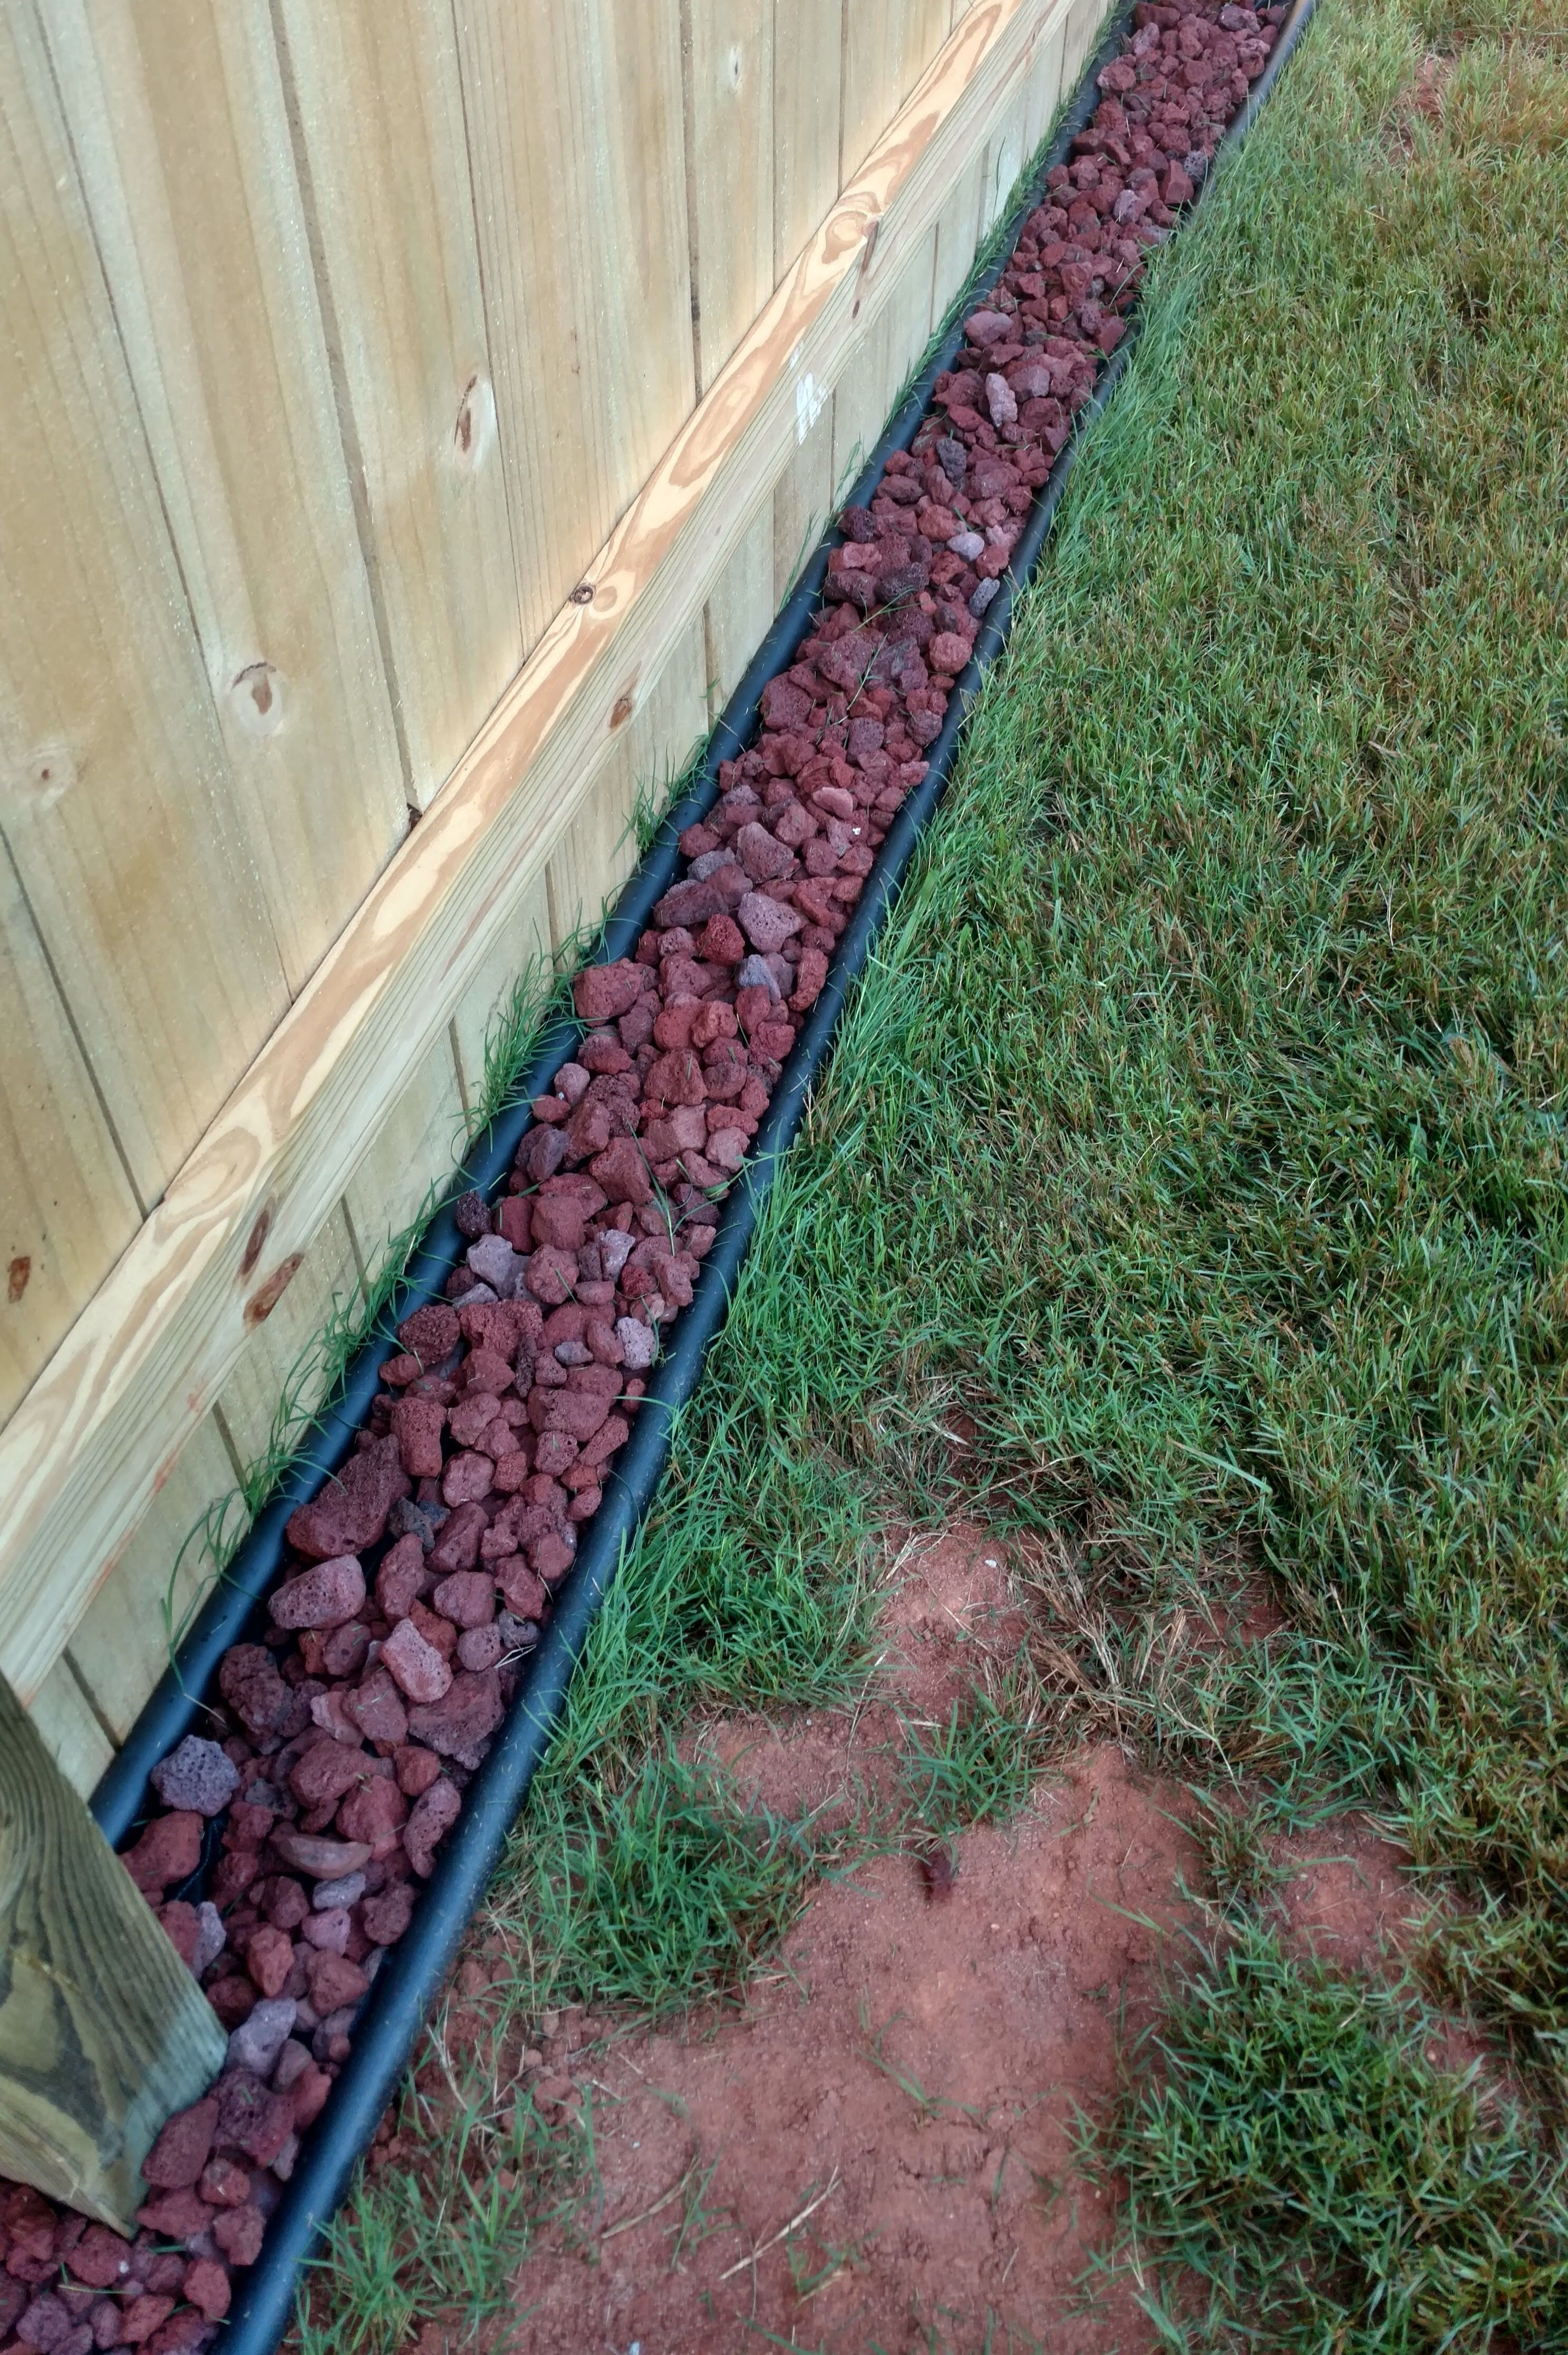 Shop Blue Hawk 20 Ft Black Plastic Landscape Edging Roll At Lowes Com This Stuff Was Easy To Use And Turn With Images Plastic Landscape Edging Landscape Edging Landscape